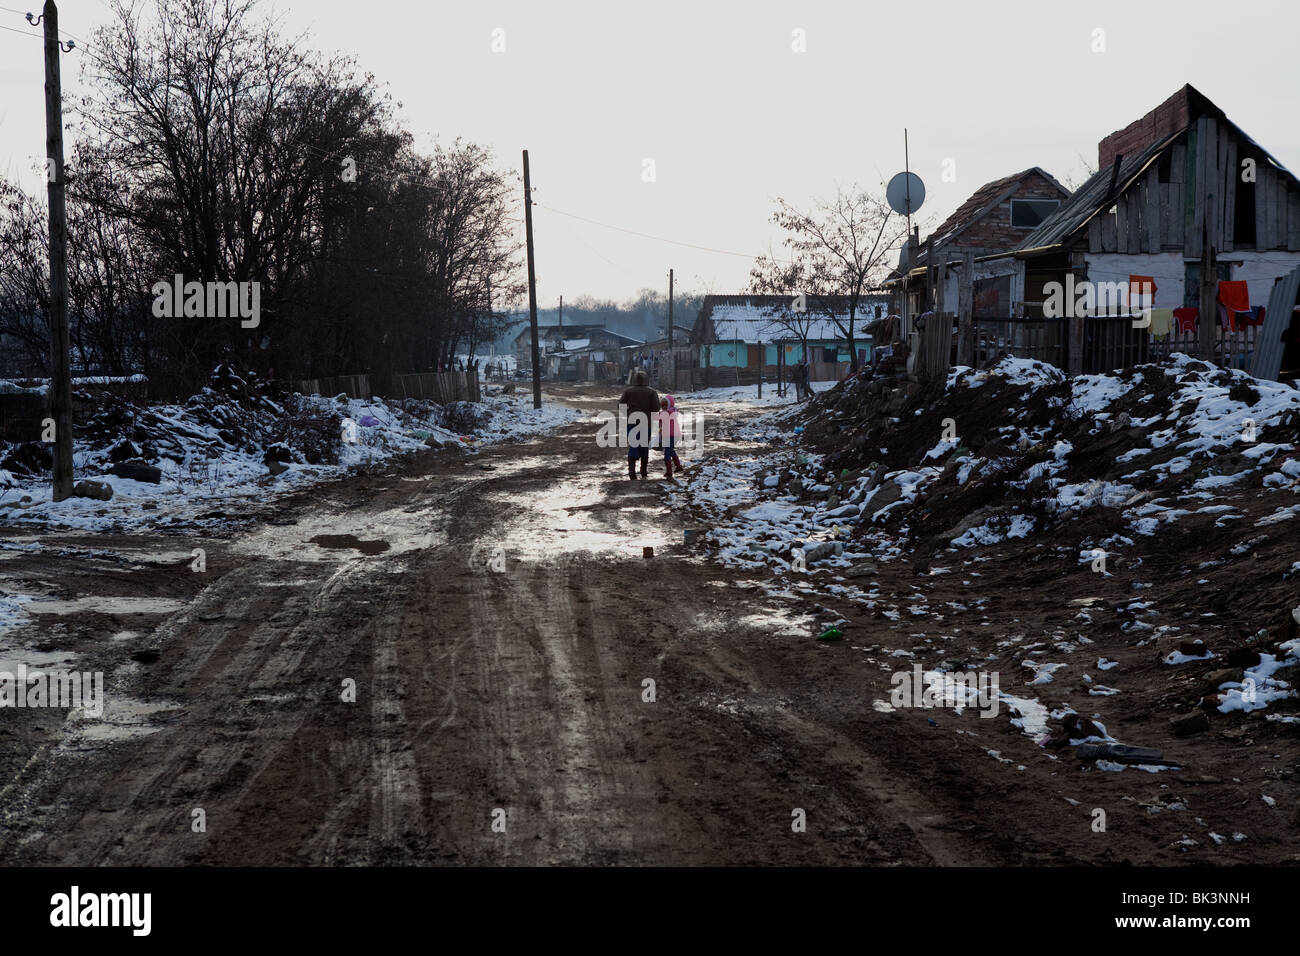 The impoverished Roma district of Arad, nicknamed